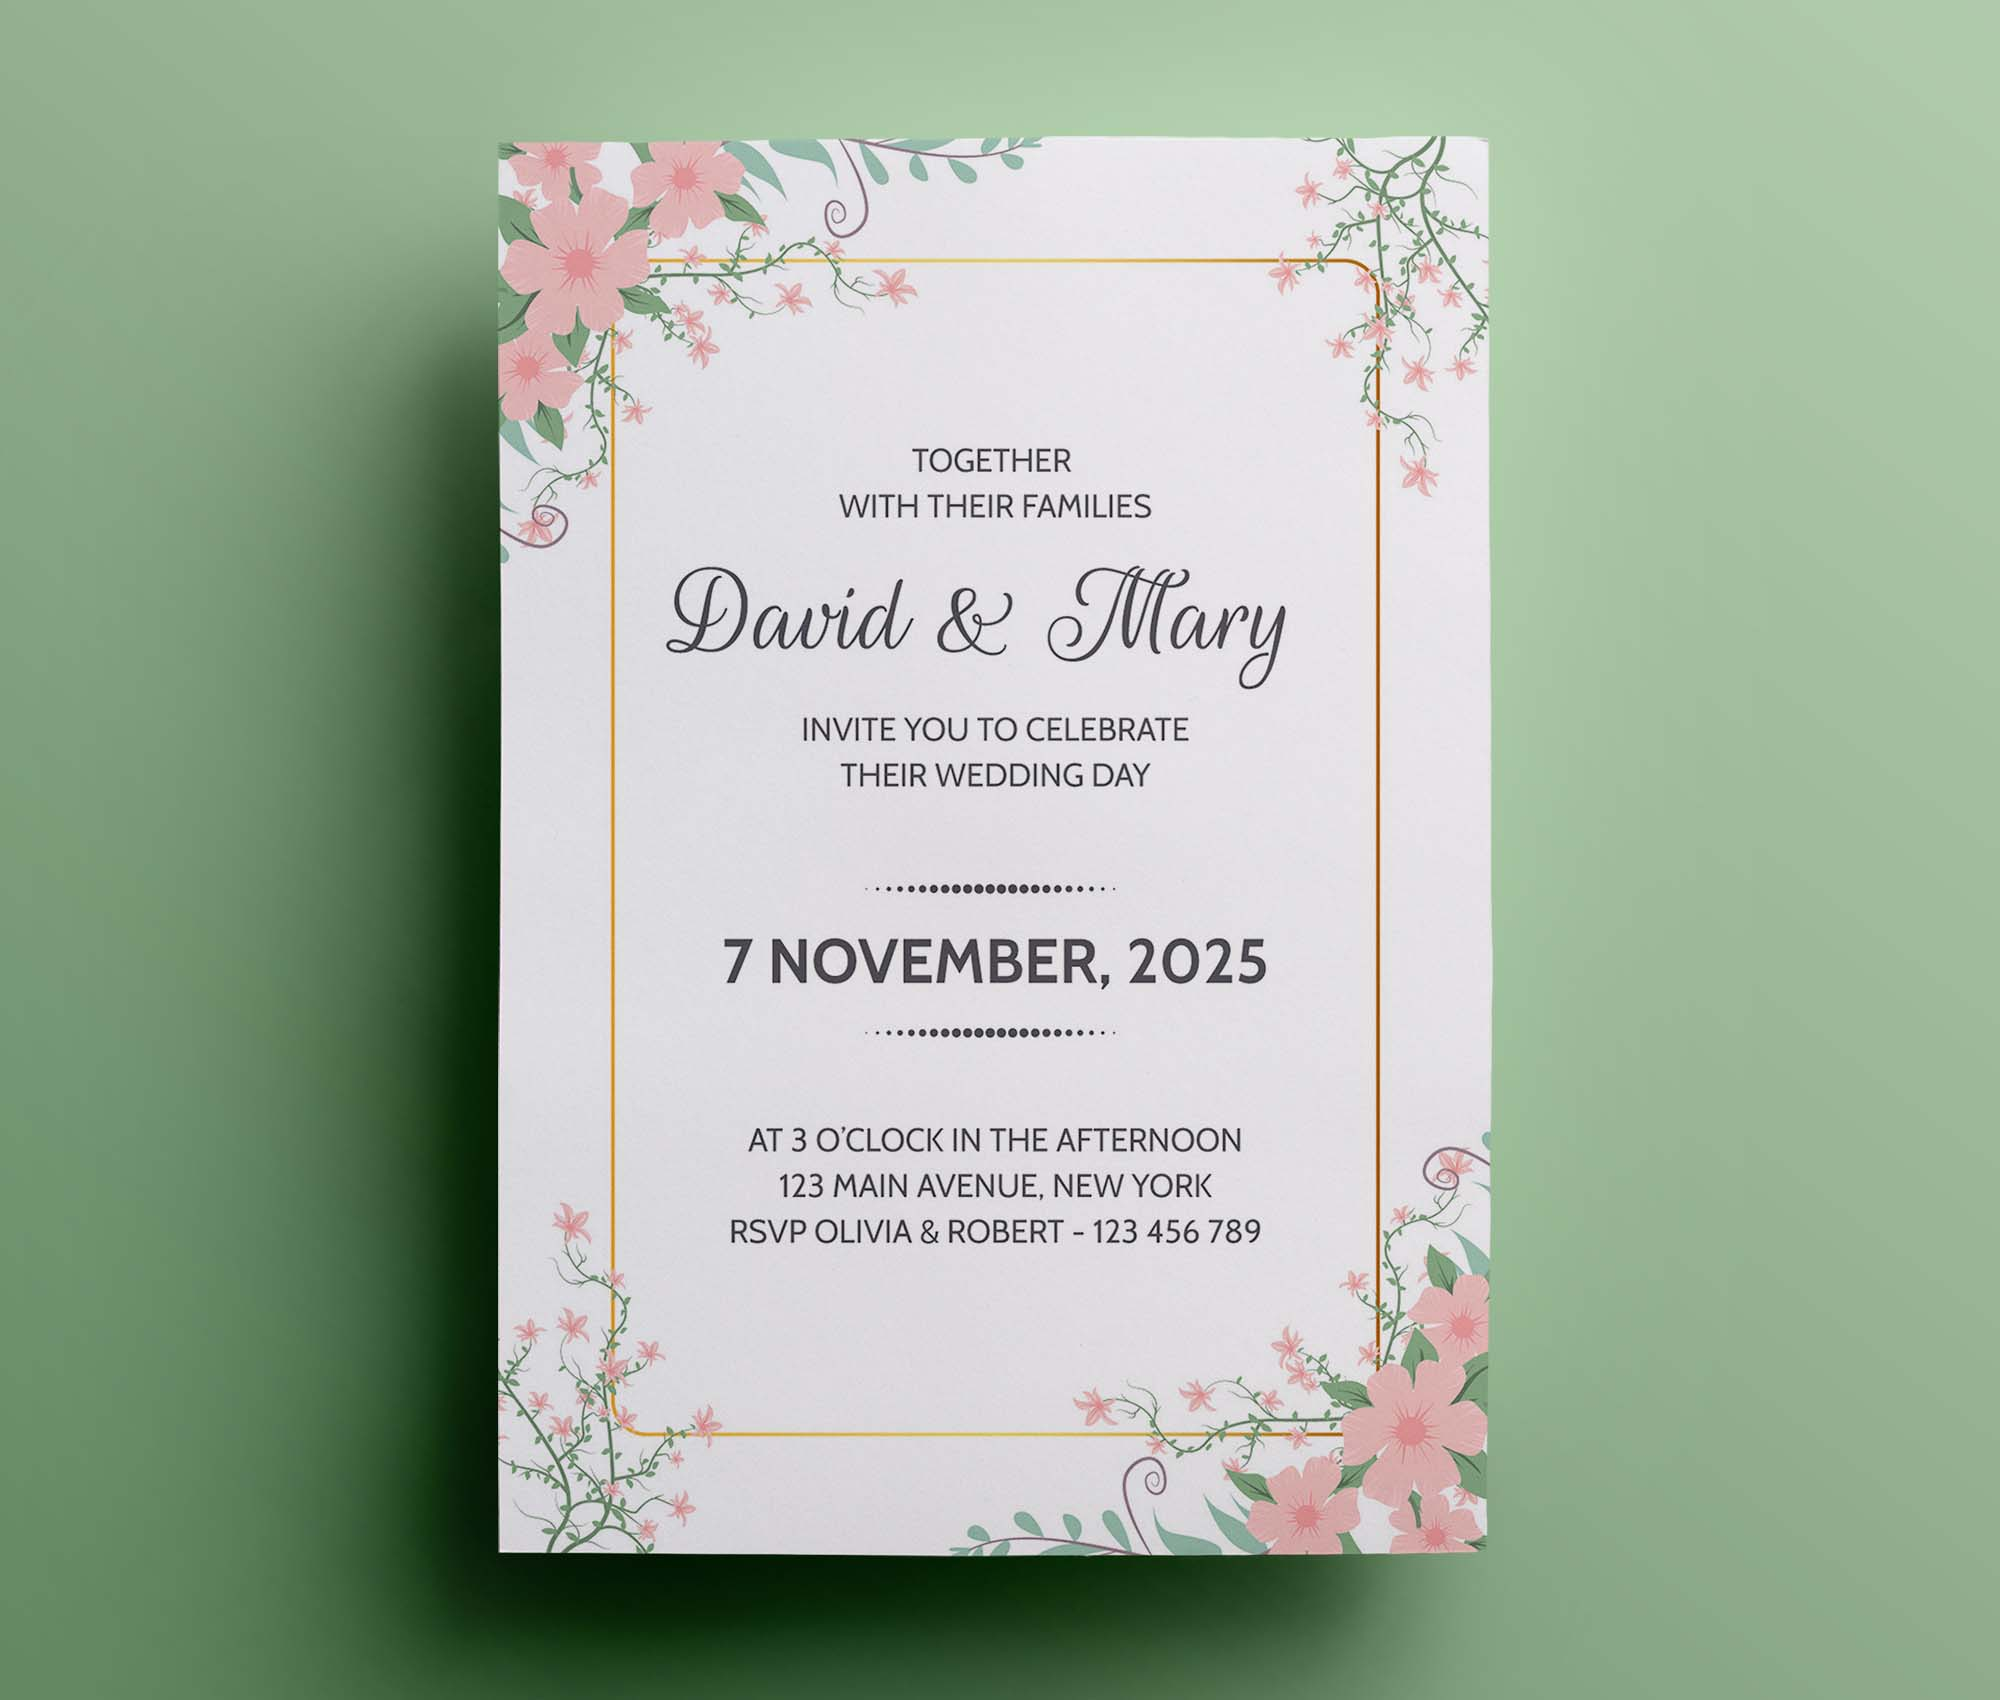 Wedding invitation Template 2